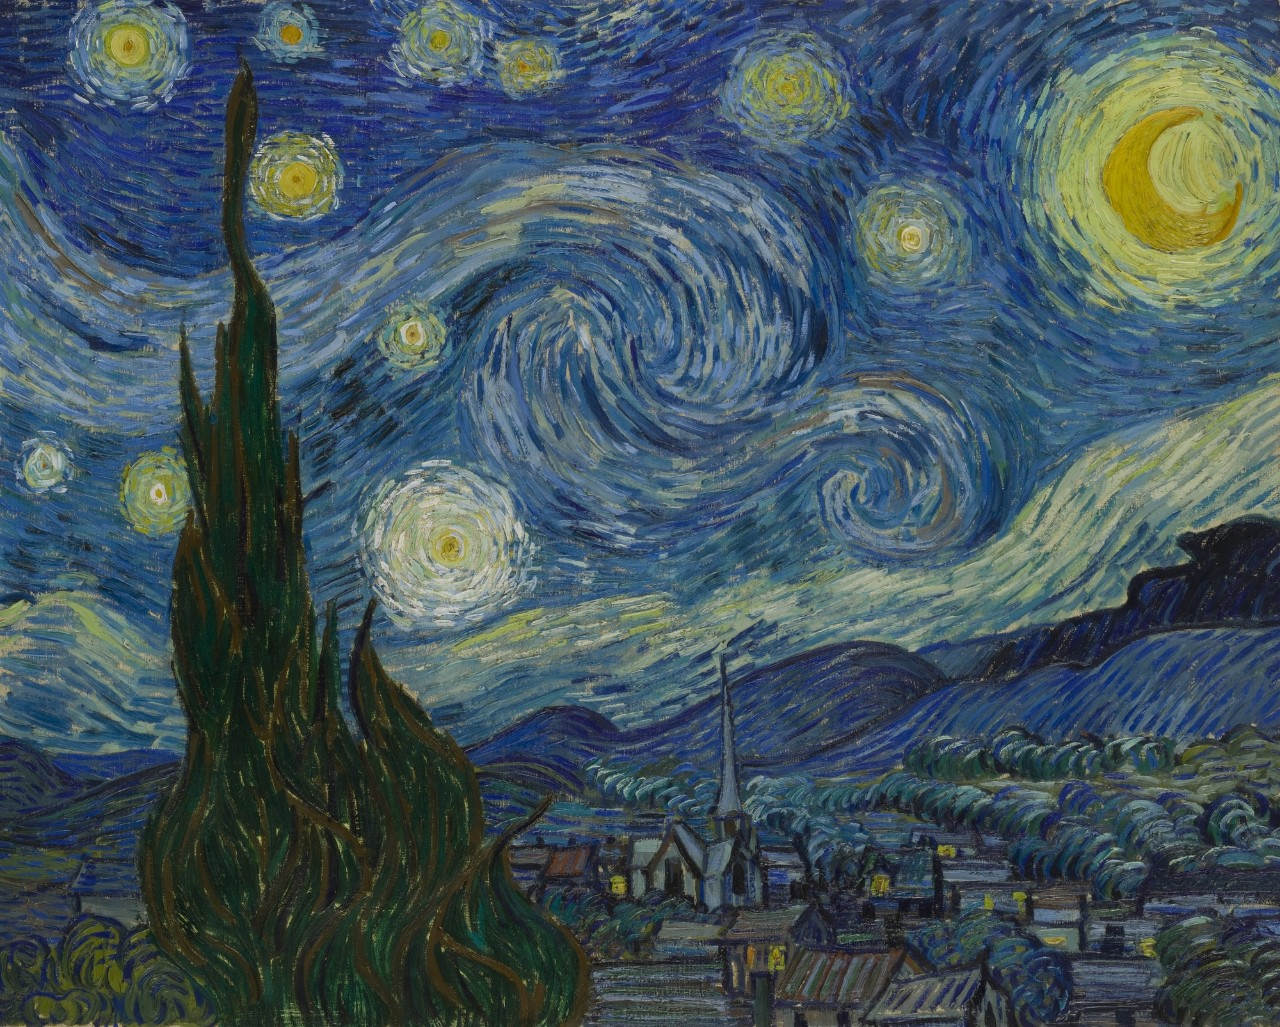 A painting by Vincent Van Gogh showing swirrly stars in a night sky over a peaceful village.